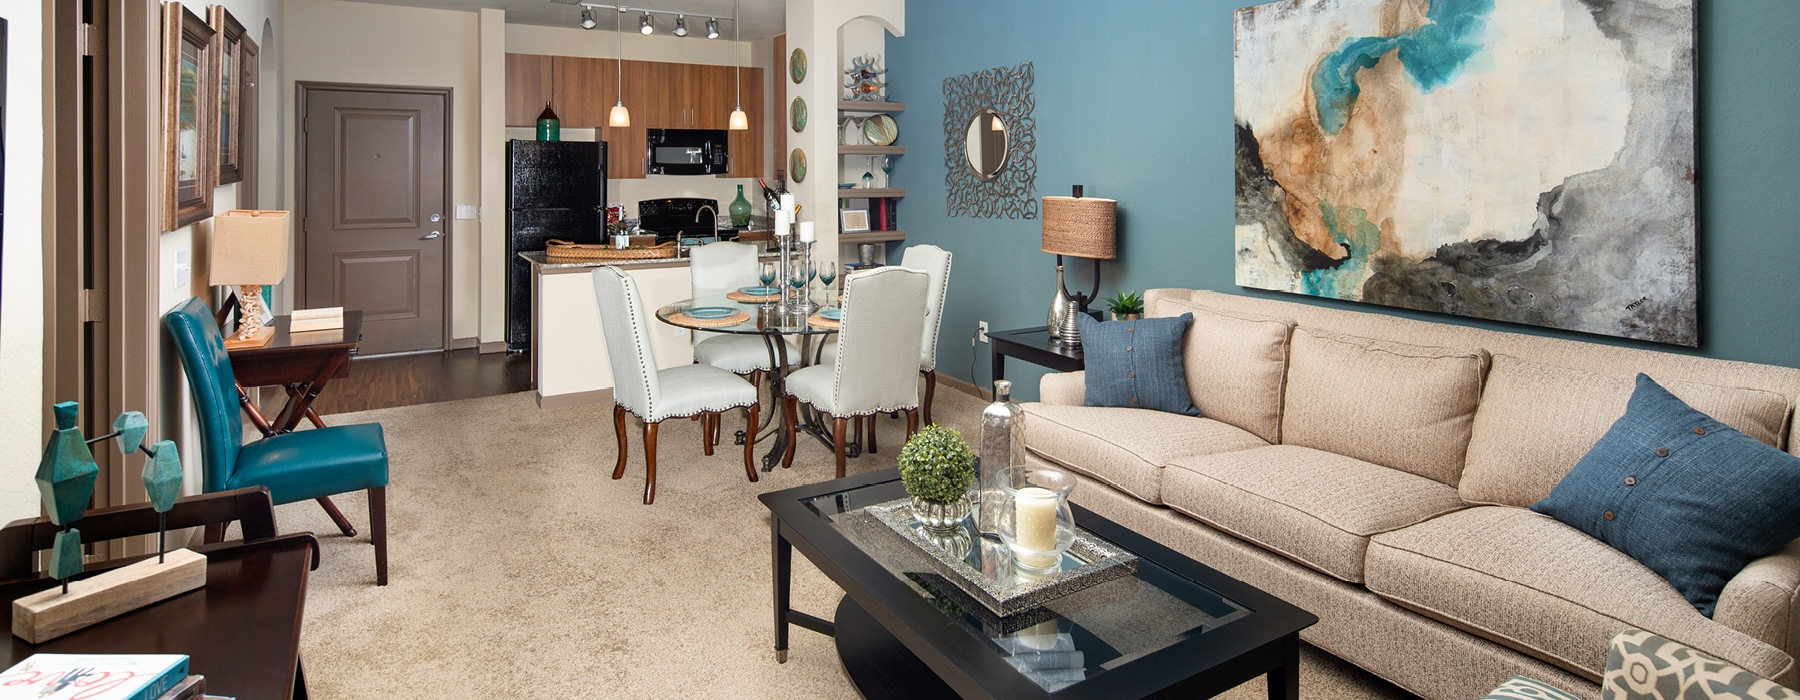 open and brightly lit living room with accent wall